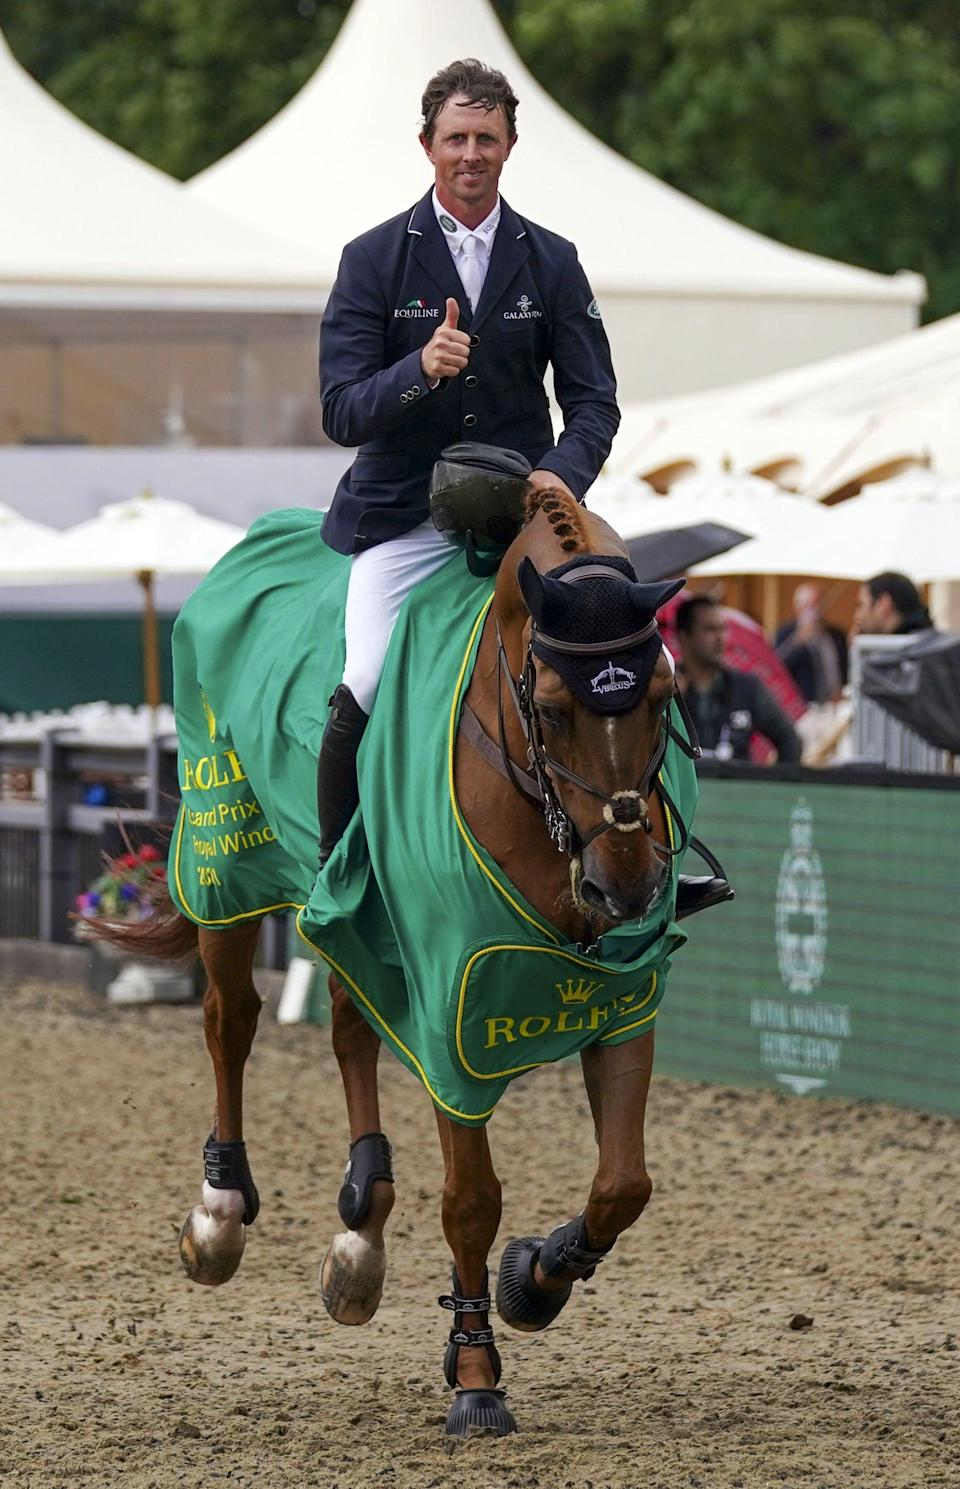 Ben Maher following his victory in the Rolex Grand Prix at Windsor on Explosion W (Steve Parsons/PA) (PA Wire)